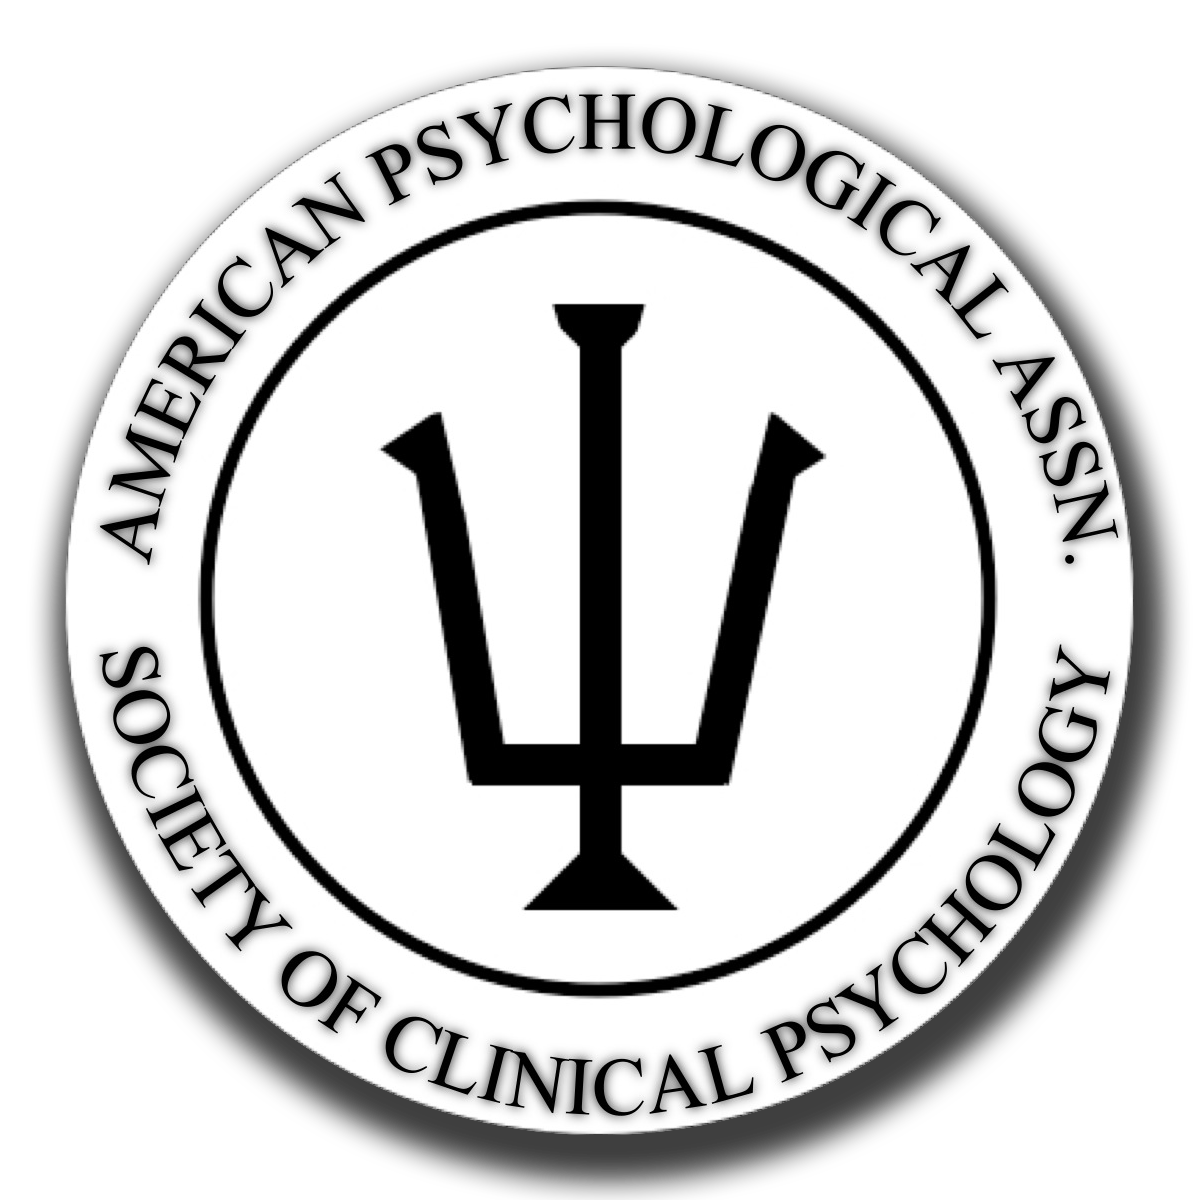 Division 12 of the American Psychological Association